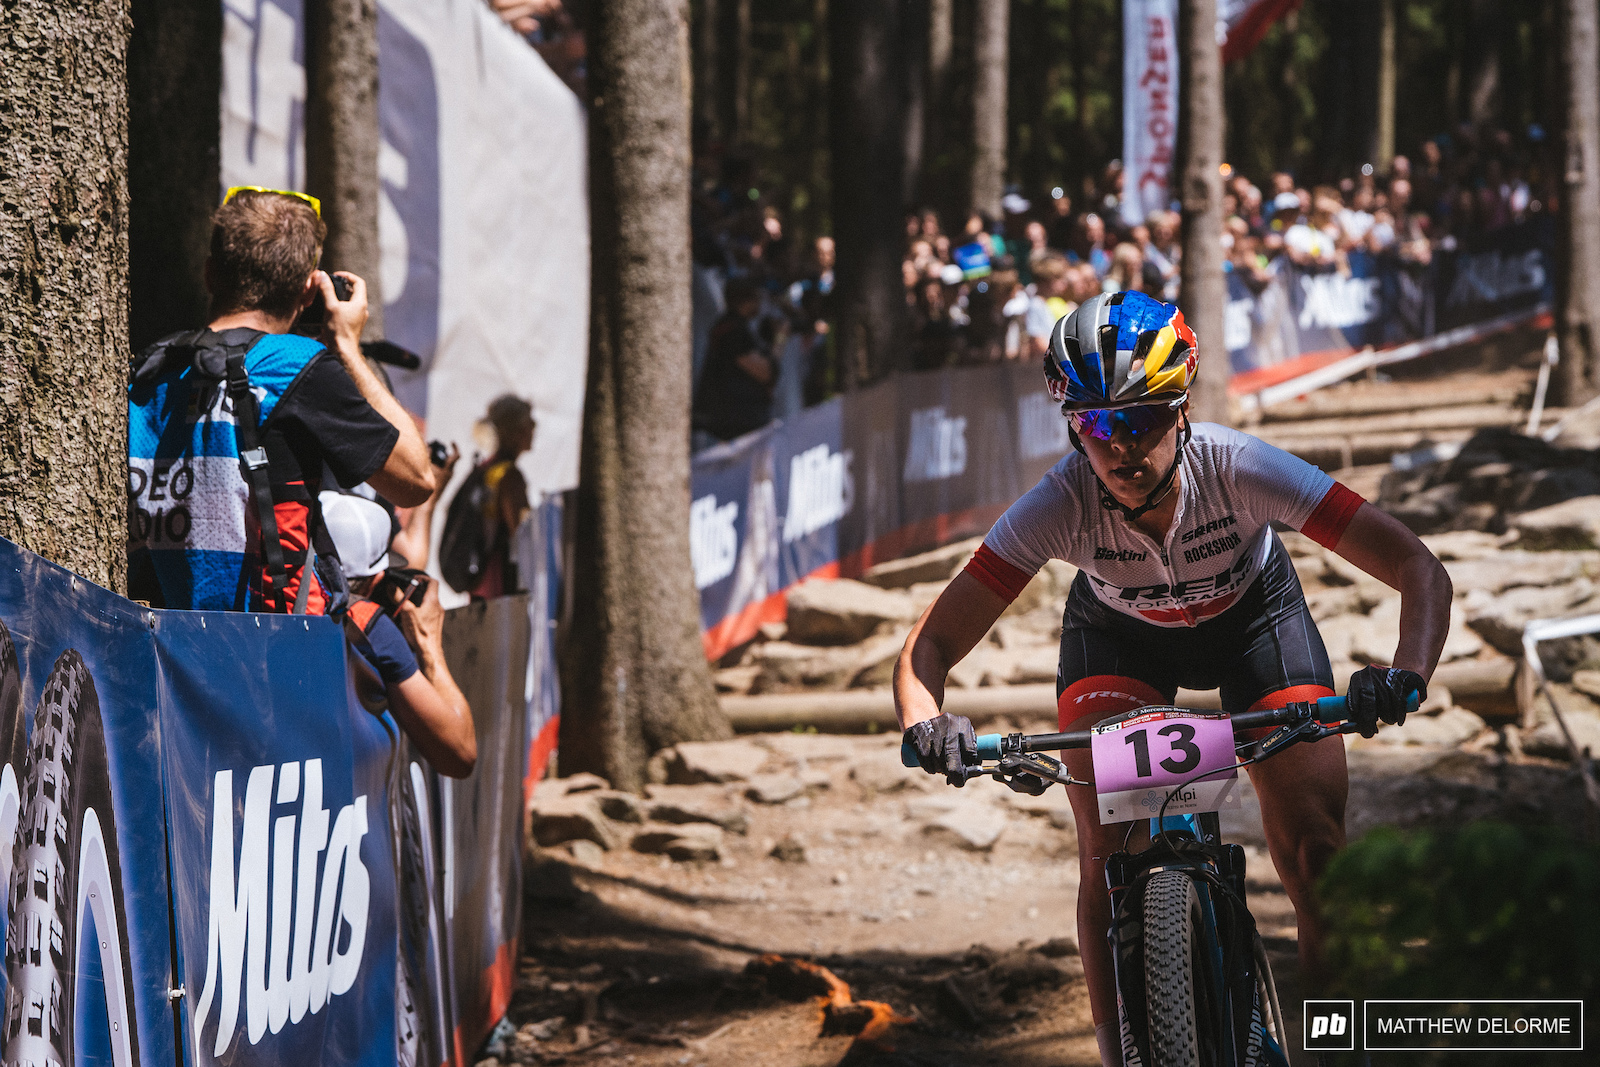 Emily Batty found her fire today and rode to an impressive fourth place finish.